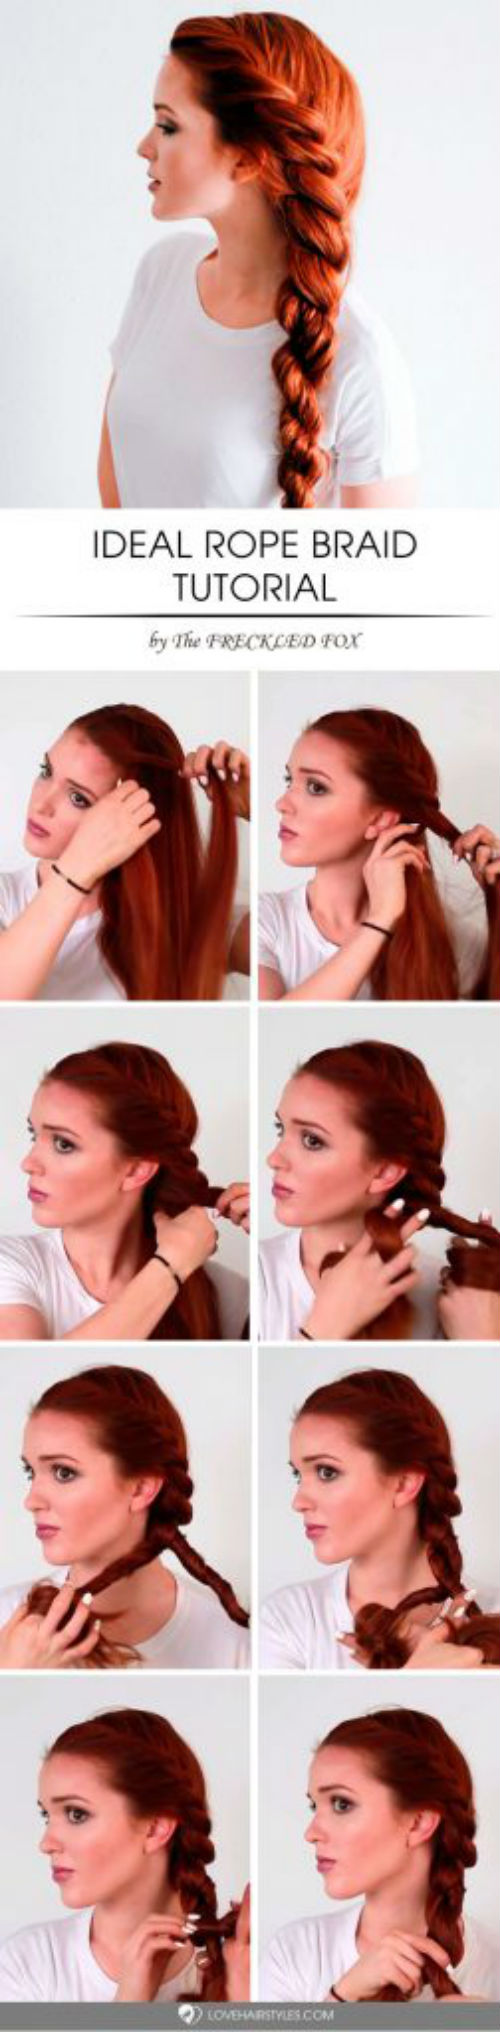 how to style rope braid